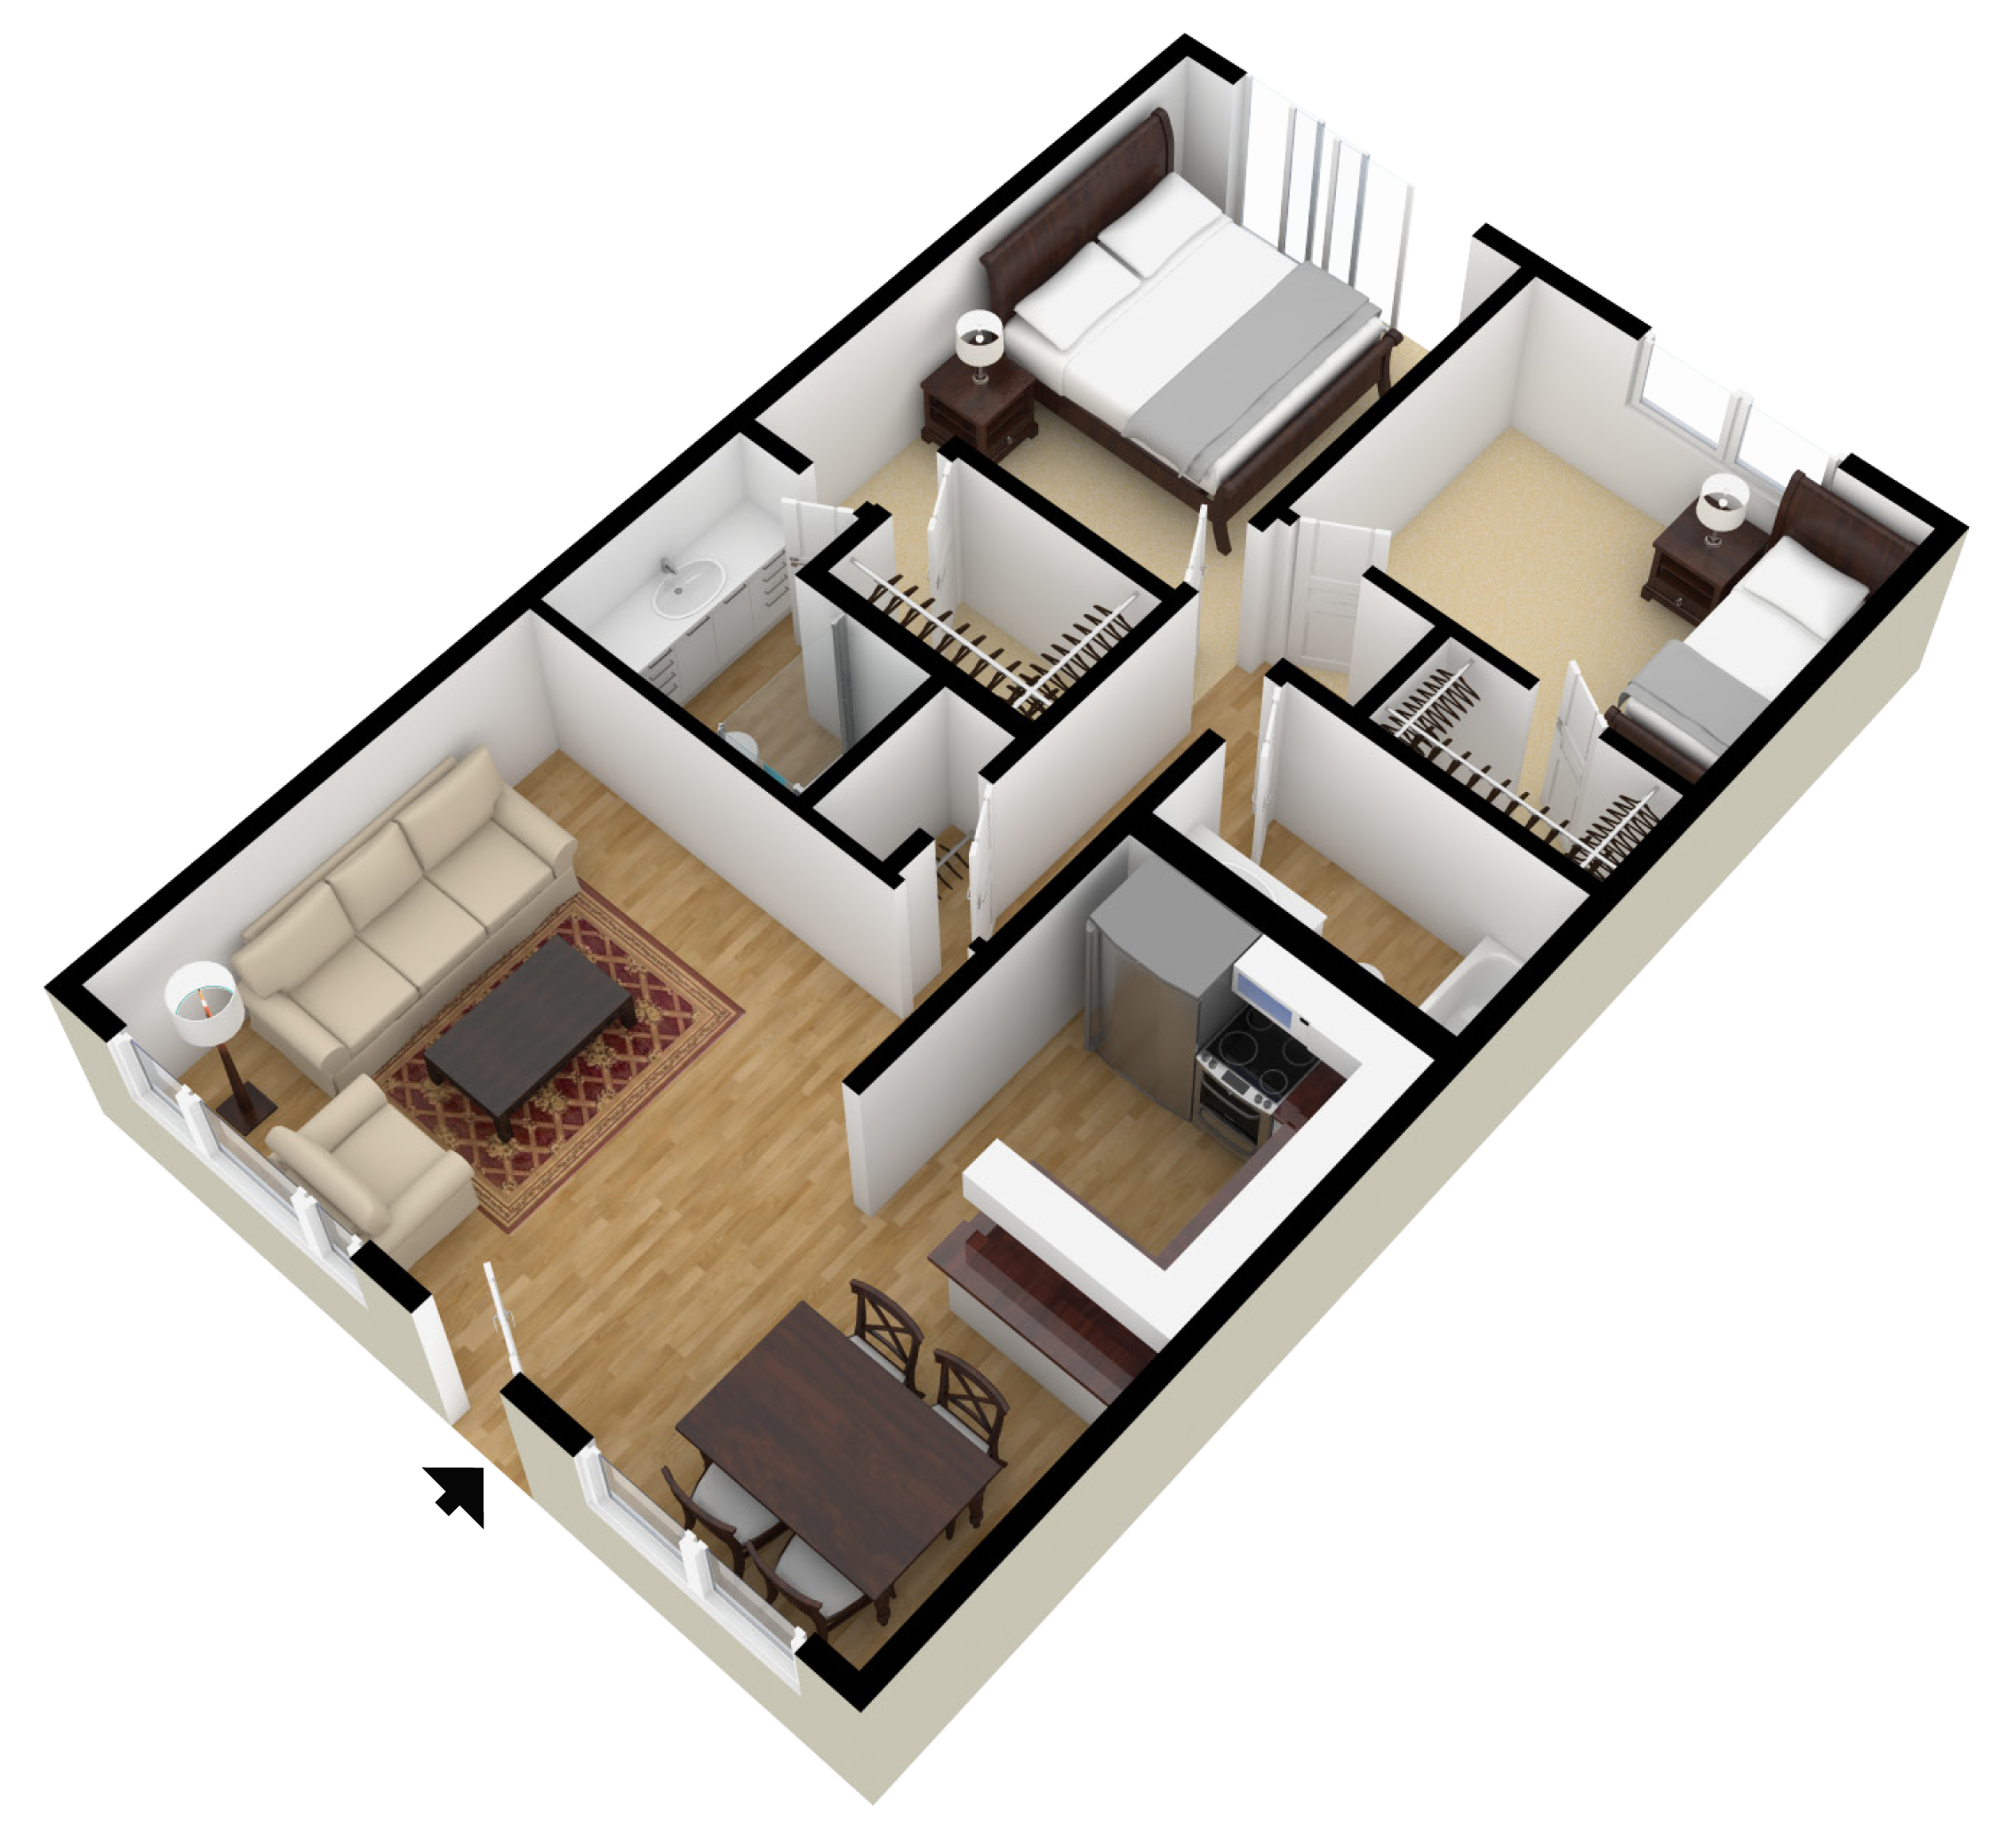 Floor Plans For 3 Bedroom Apartments Studio 1 Amp 2 Bedroom Floor Plans City Plaza Apartments